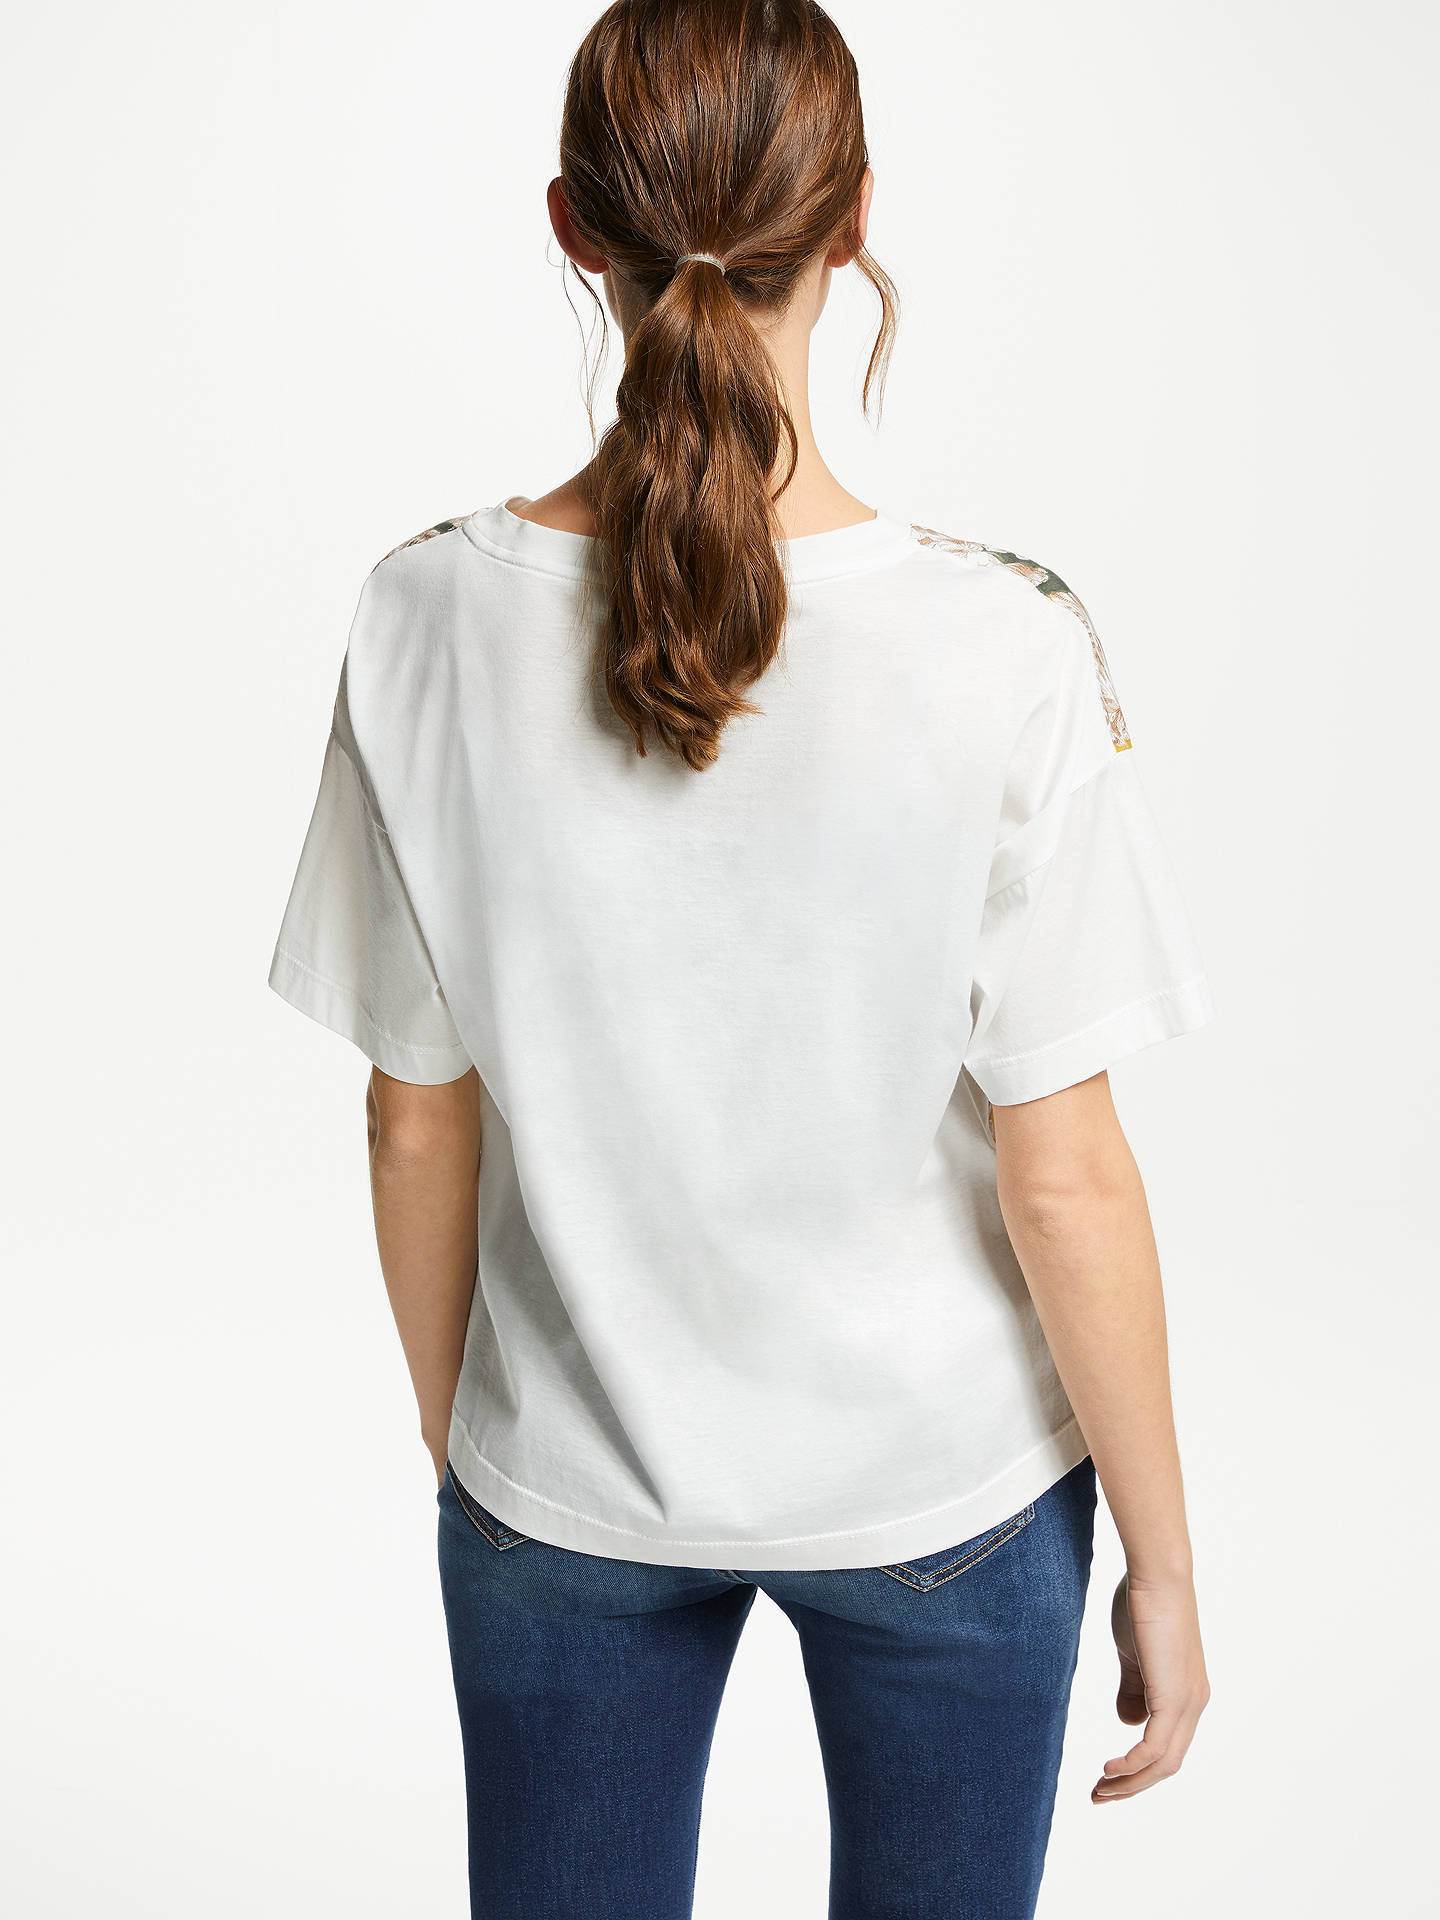 BuyWeekend Floral Jersey T-Shirt, White/Yellow, M Online at johnlewis.com